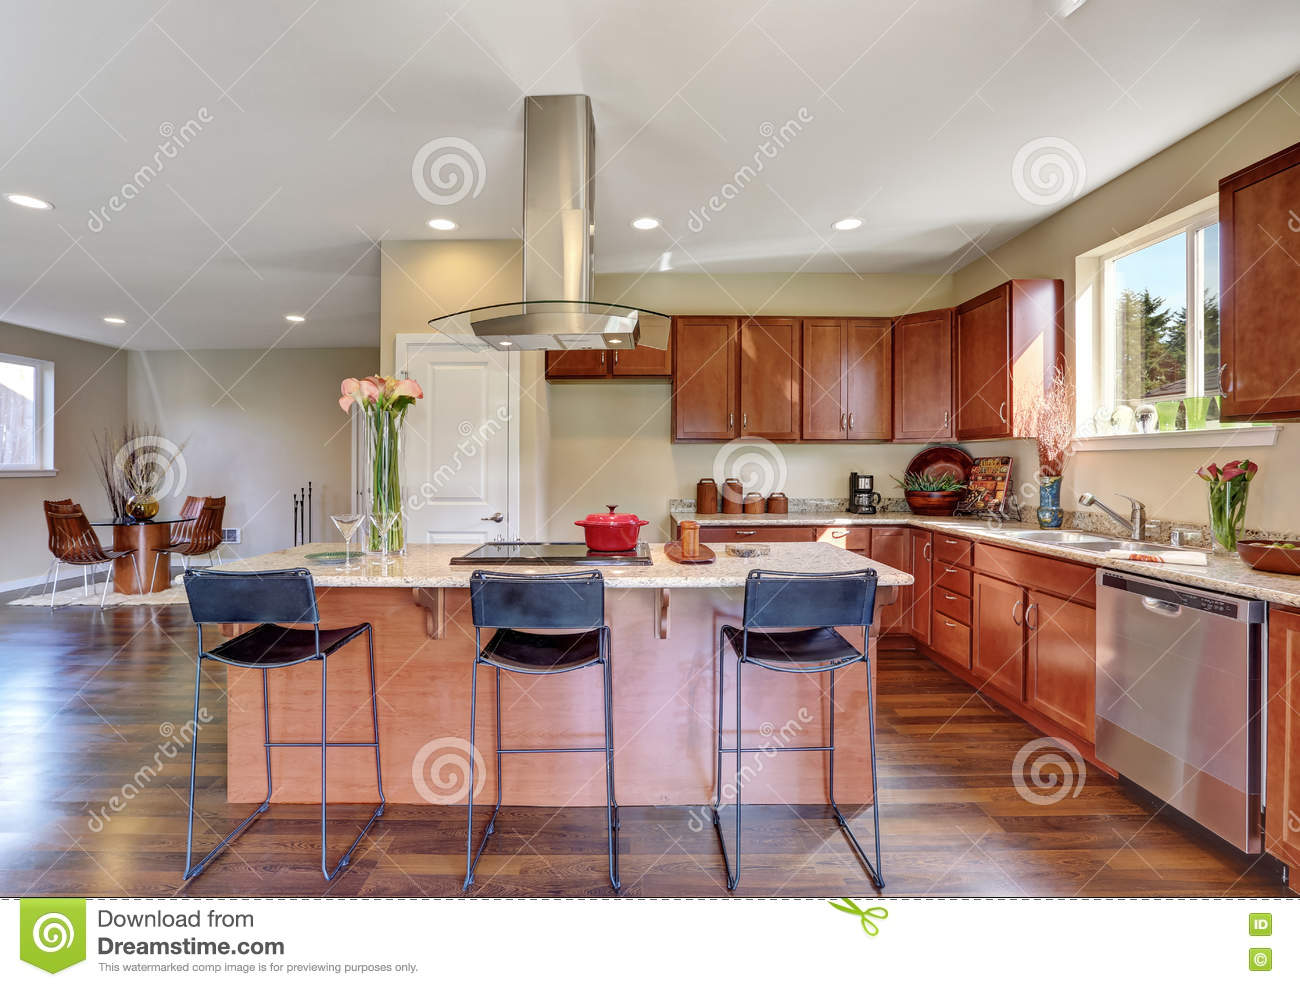 Uncategorized American Kitchen Appliances traditional american kitchen featuring stainless steel appliances appliances